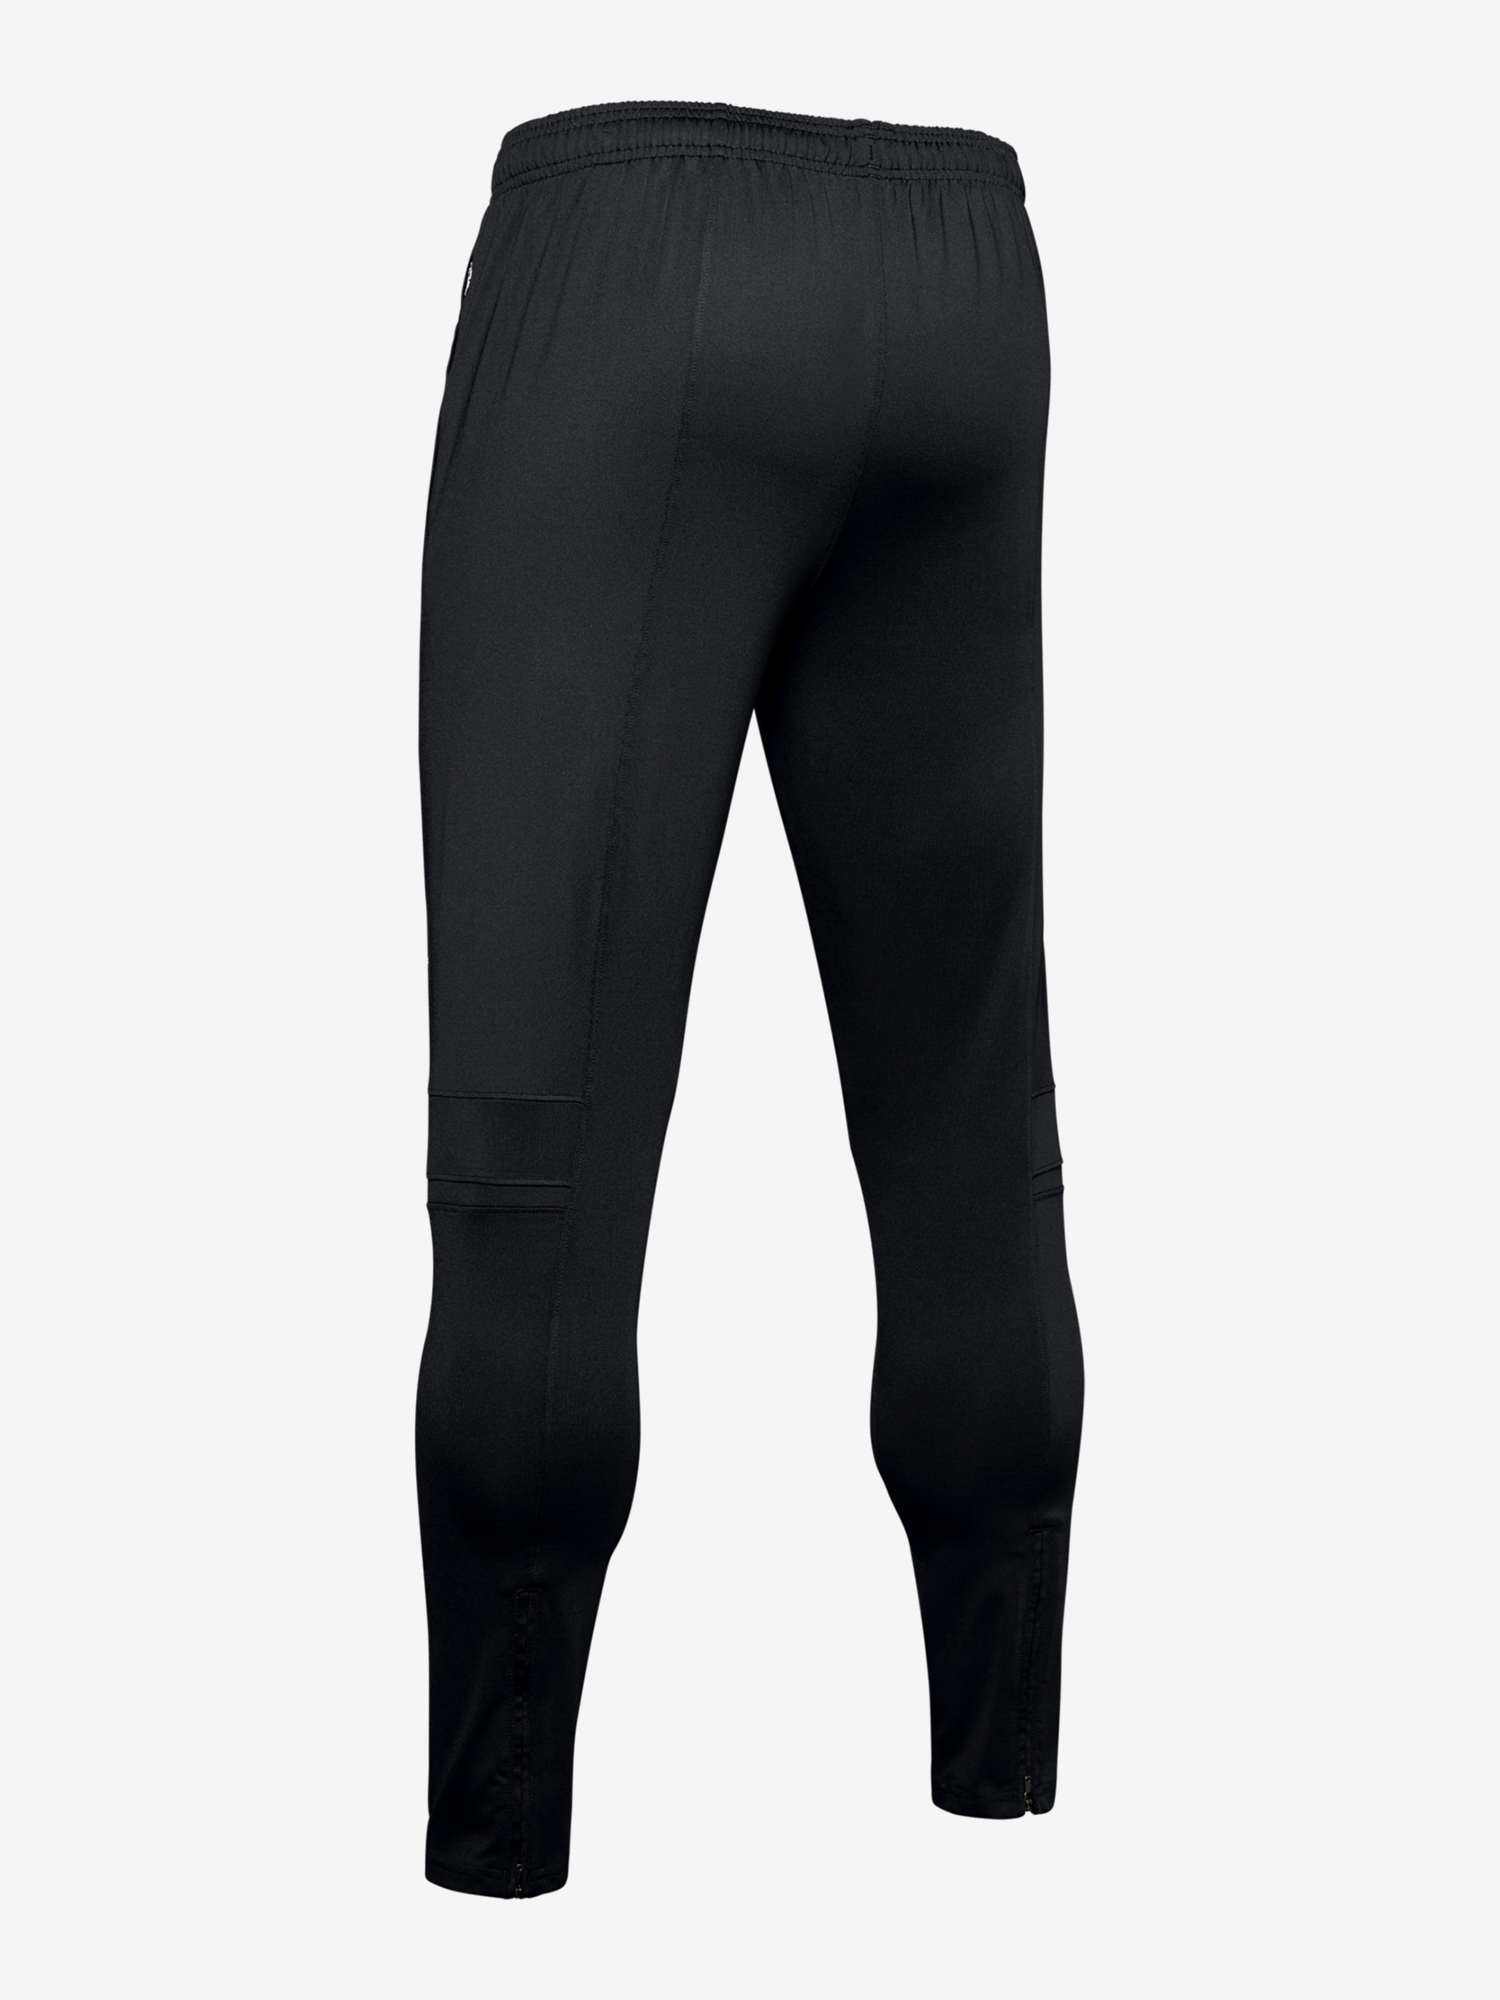 Tepláky Under Armour Challenger Iii Training Pant-Blk (4)